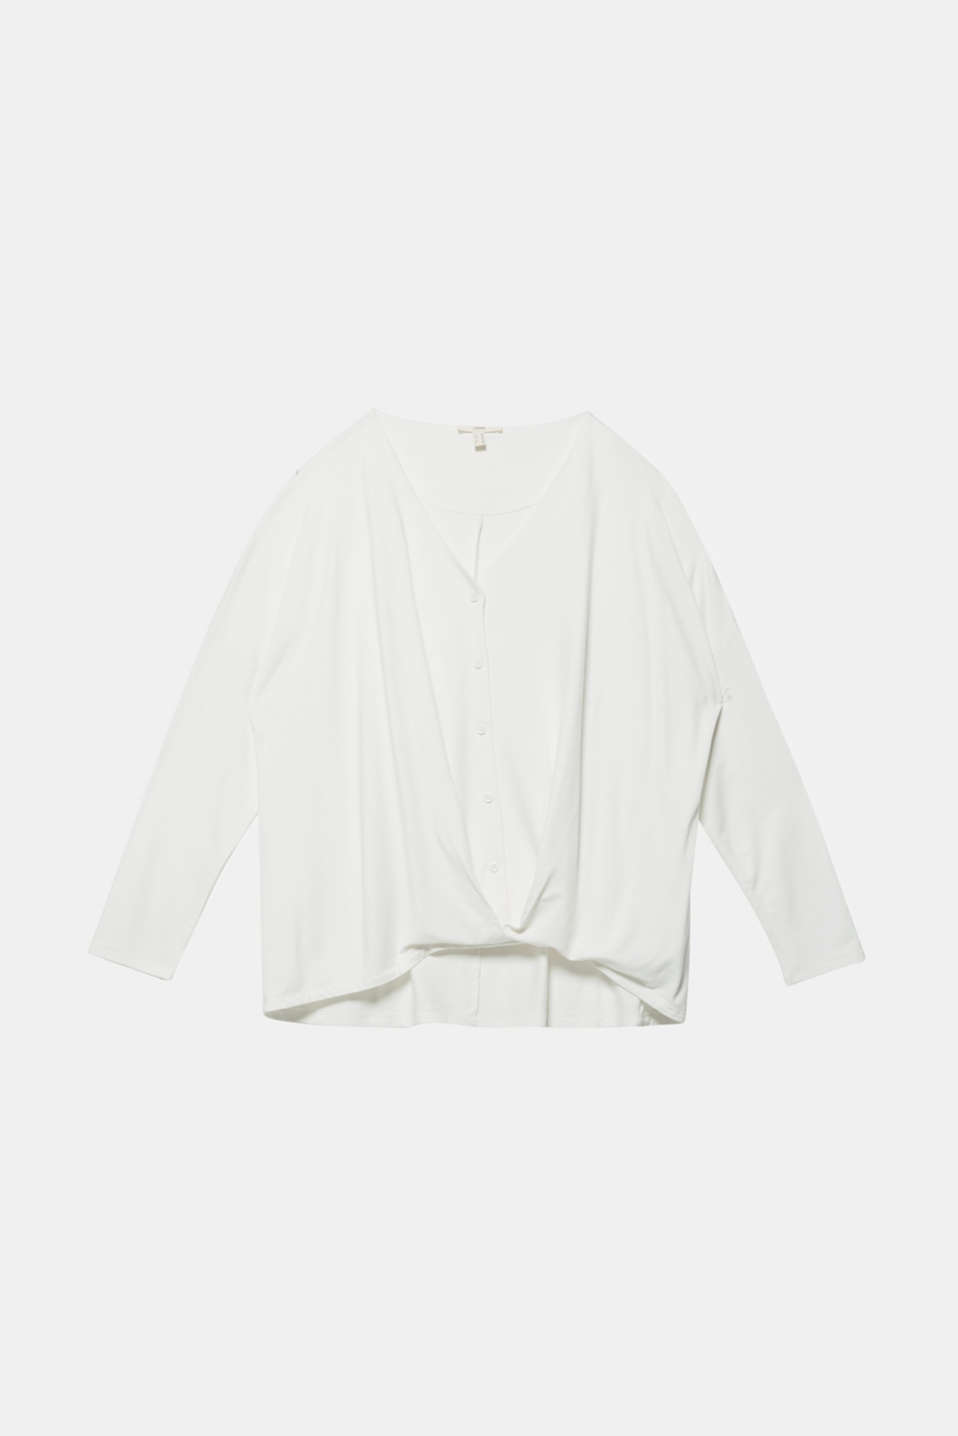 CURVY long sleeve top with a button placket and a wrap-around effect, OFF WHITE, detail image number 5